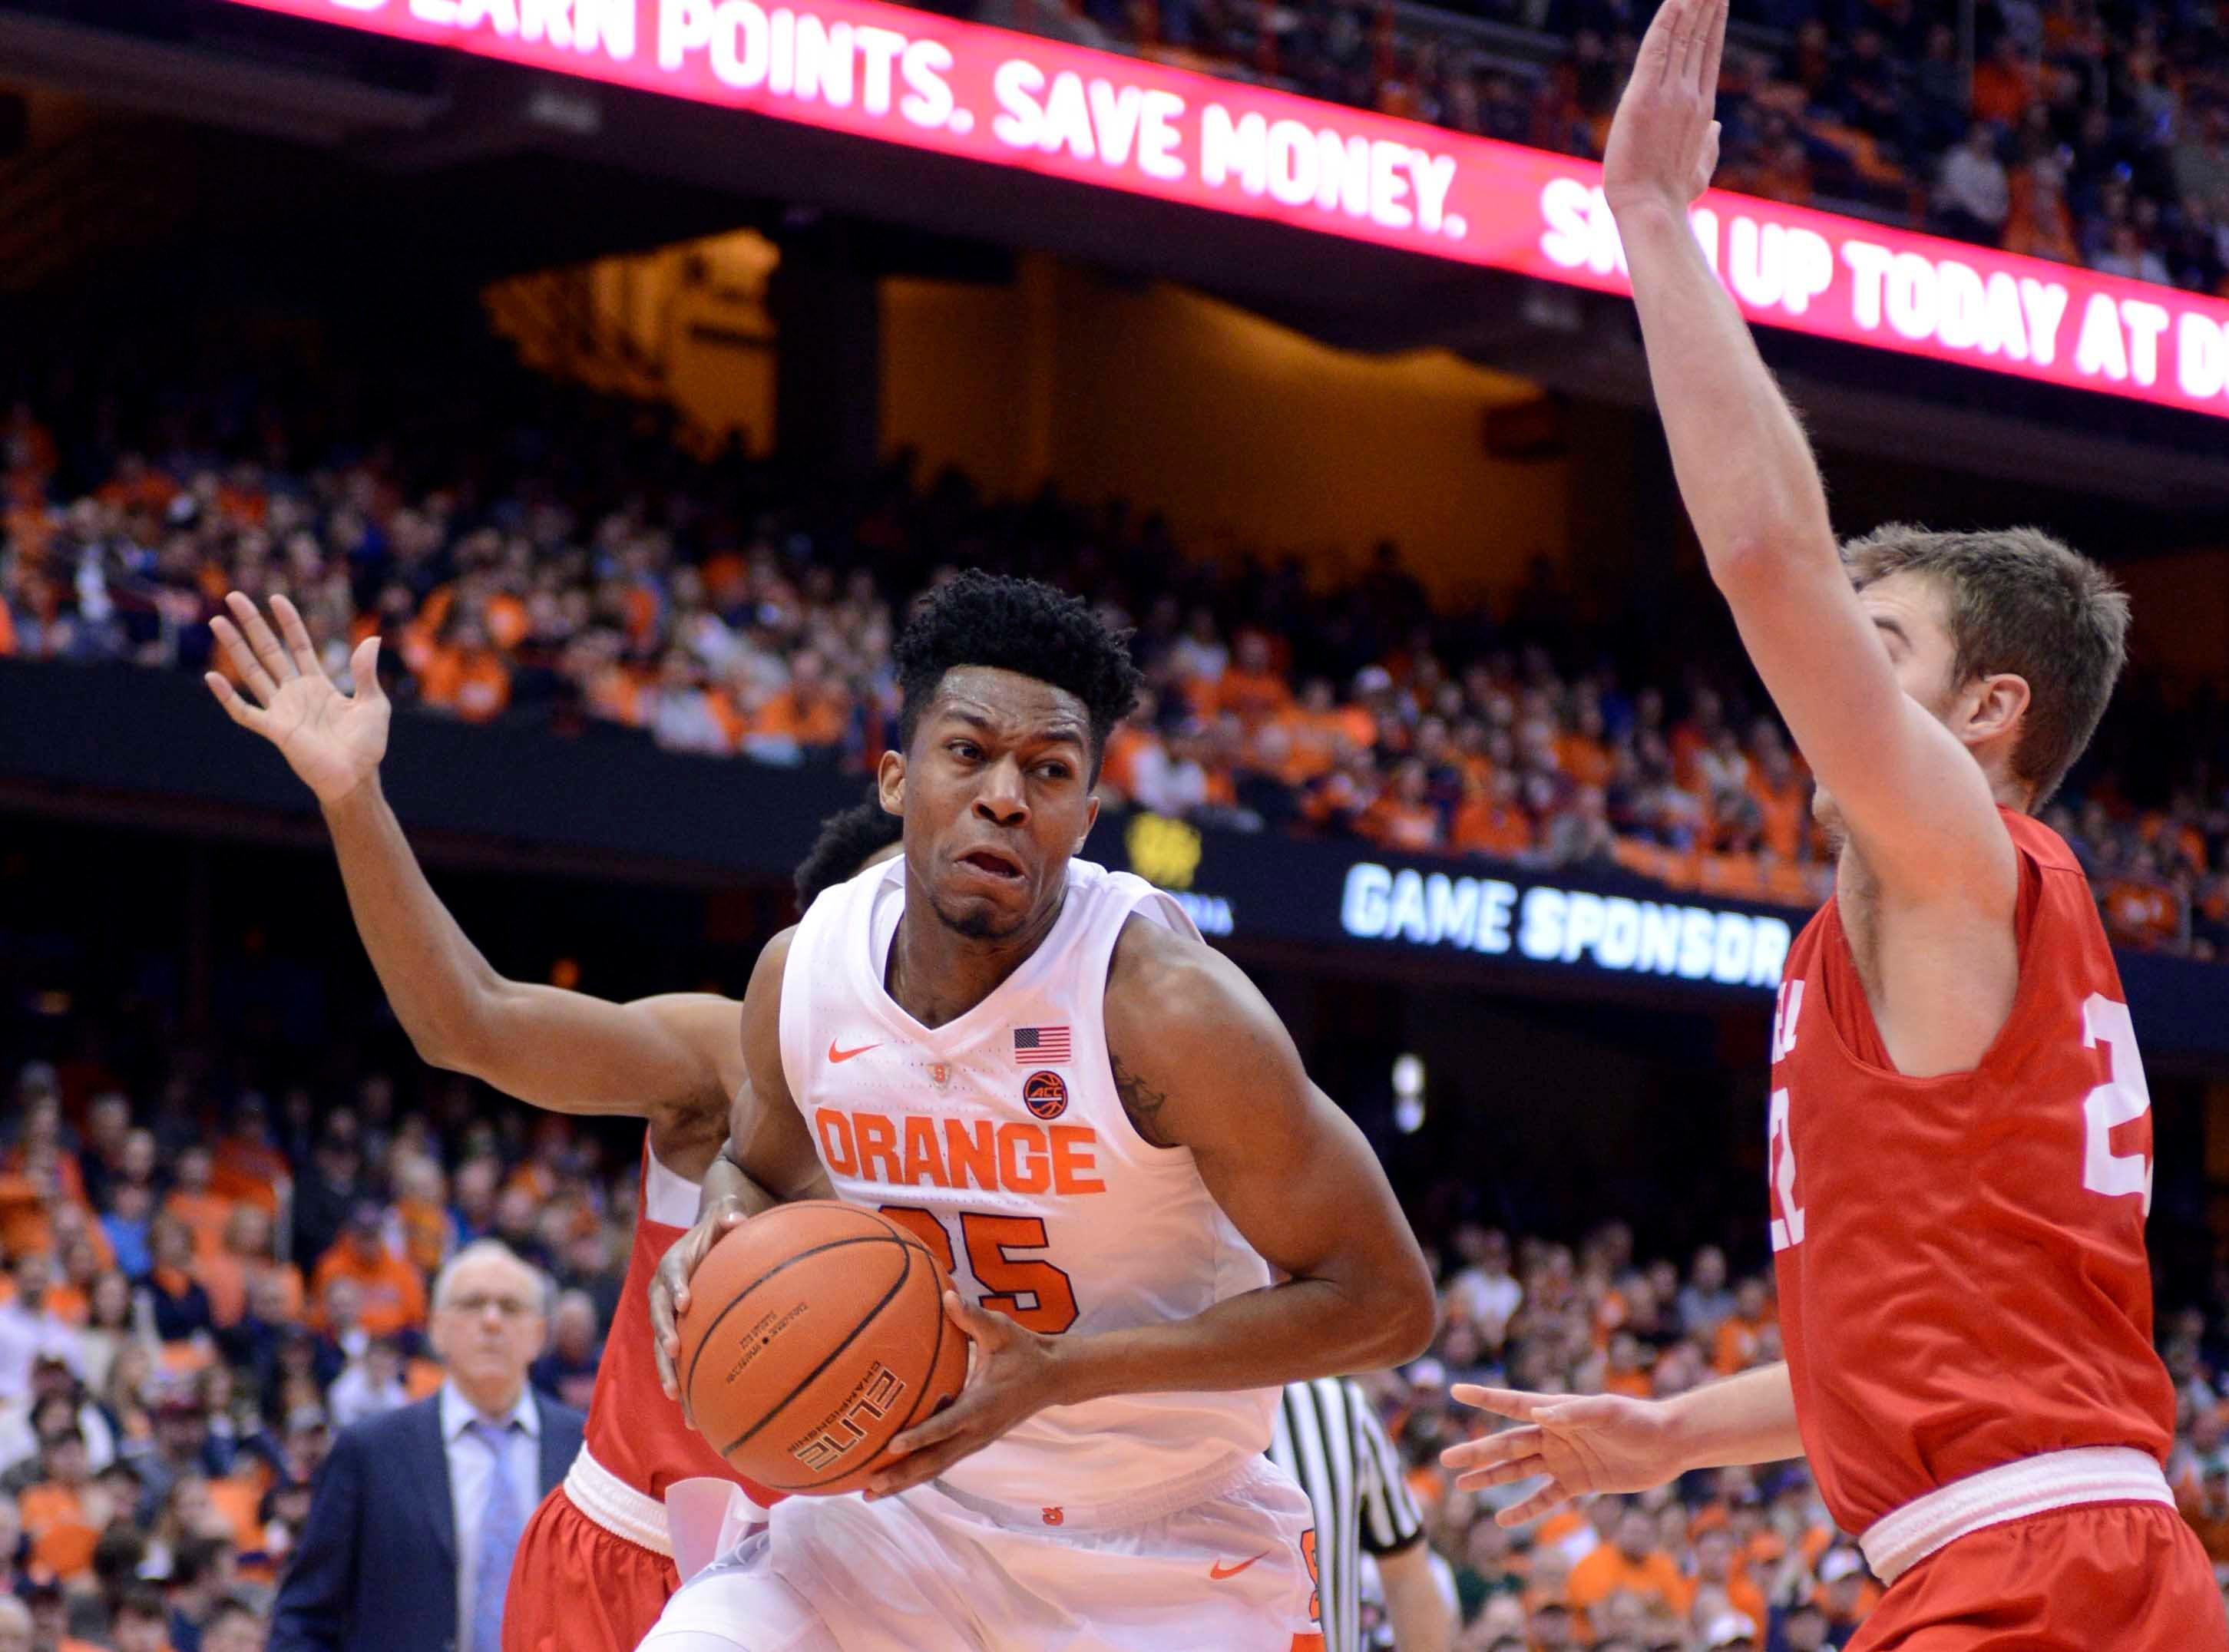 Dec 1, 2018; Syracuse, NY, USA; Syracuse Orange guard Tyus Battle (25) drives the ball as Cornell Big Red forward Josh Warren (22) defends during the second half at the Carrier Dome. Mandatory Credit: Mark Konezny-USA TODAY Sports